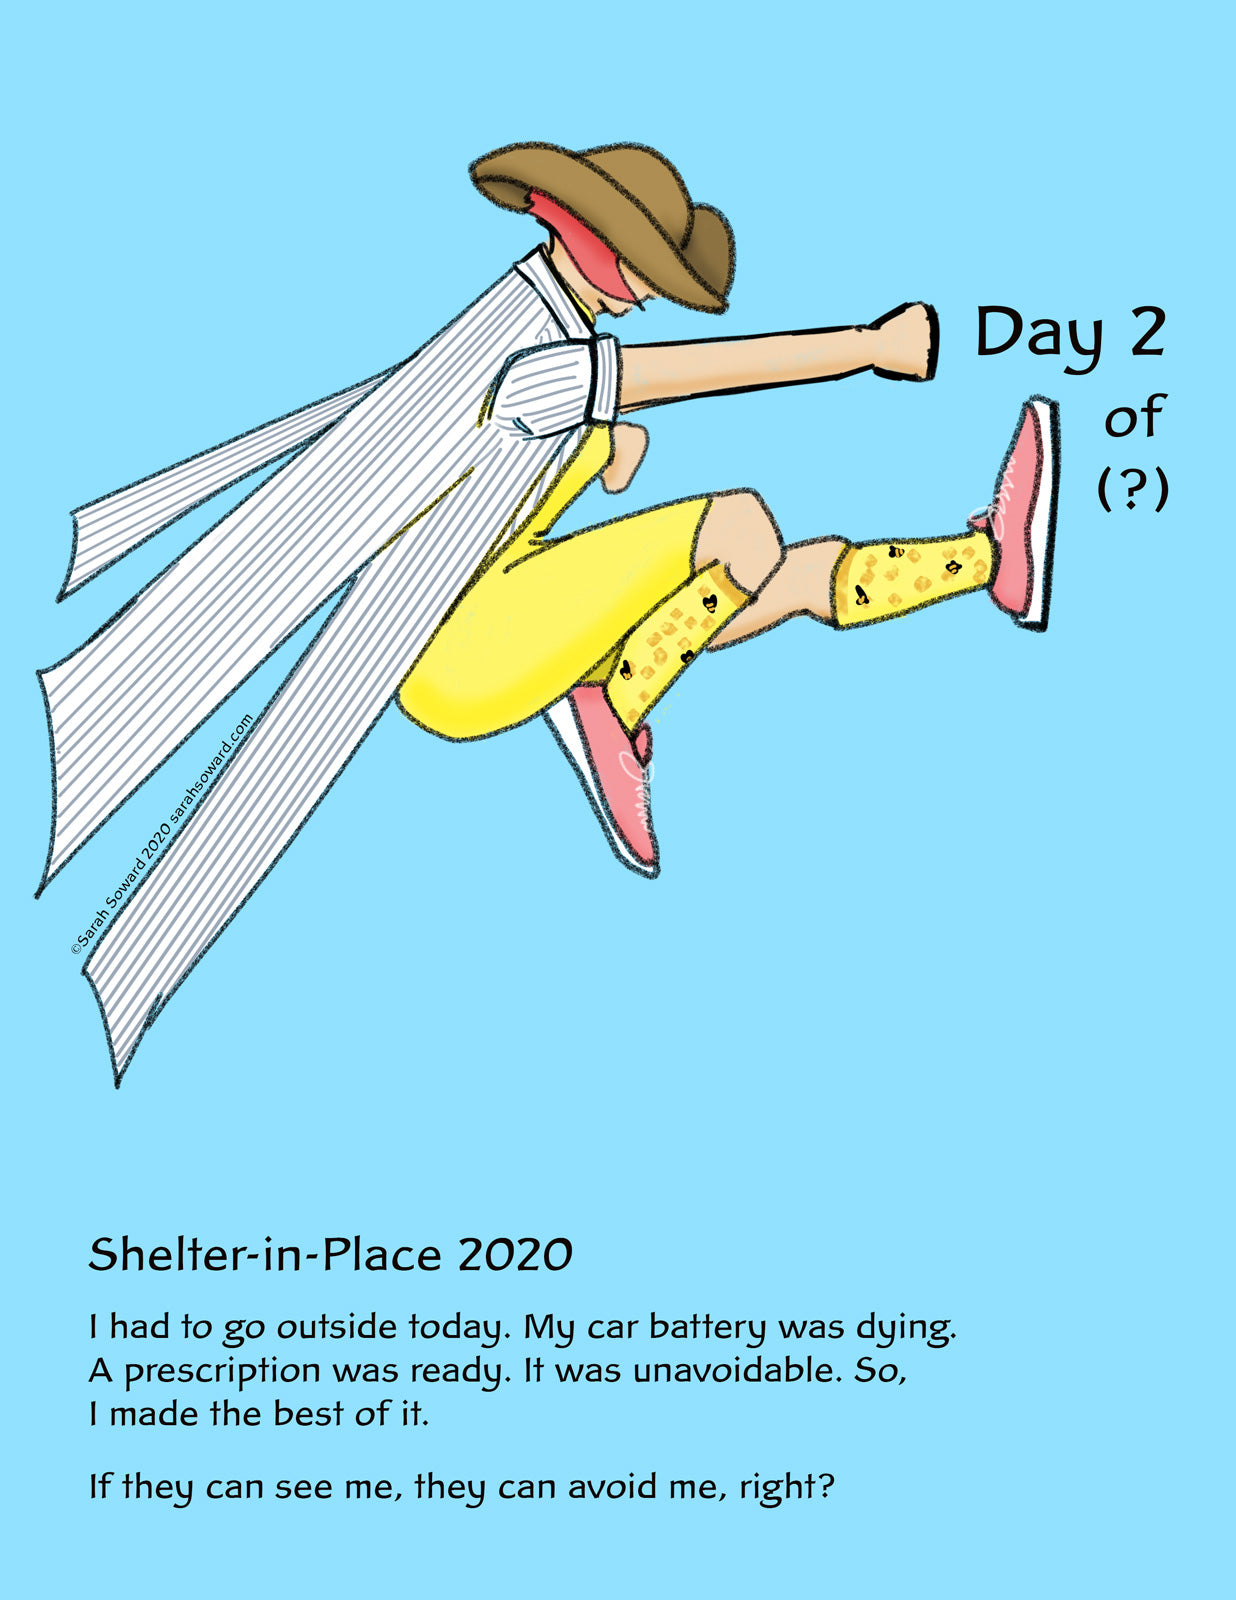 The image shows a woman in profile doing a kung-fu pose at text. The text reads: Day 2 of (?): Shelter-in-Place 2020. I had to go outside today. My car battery was dying. A prescription was ready. It was unavoidable. So, I made the best of it. If they can see me, they can avoid me, right?